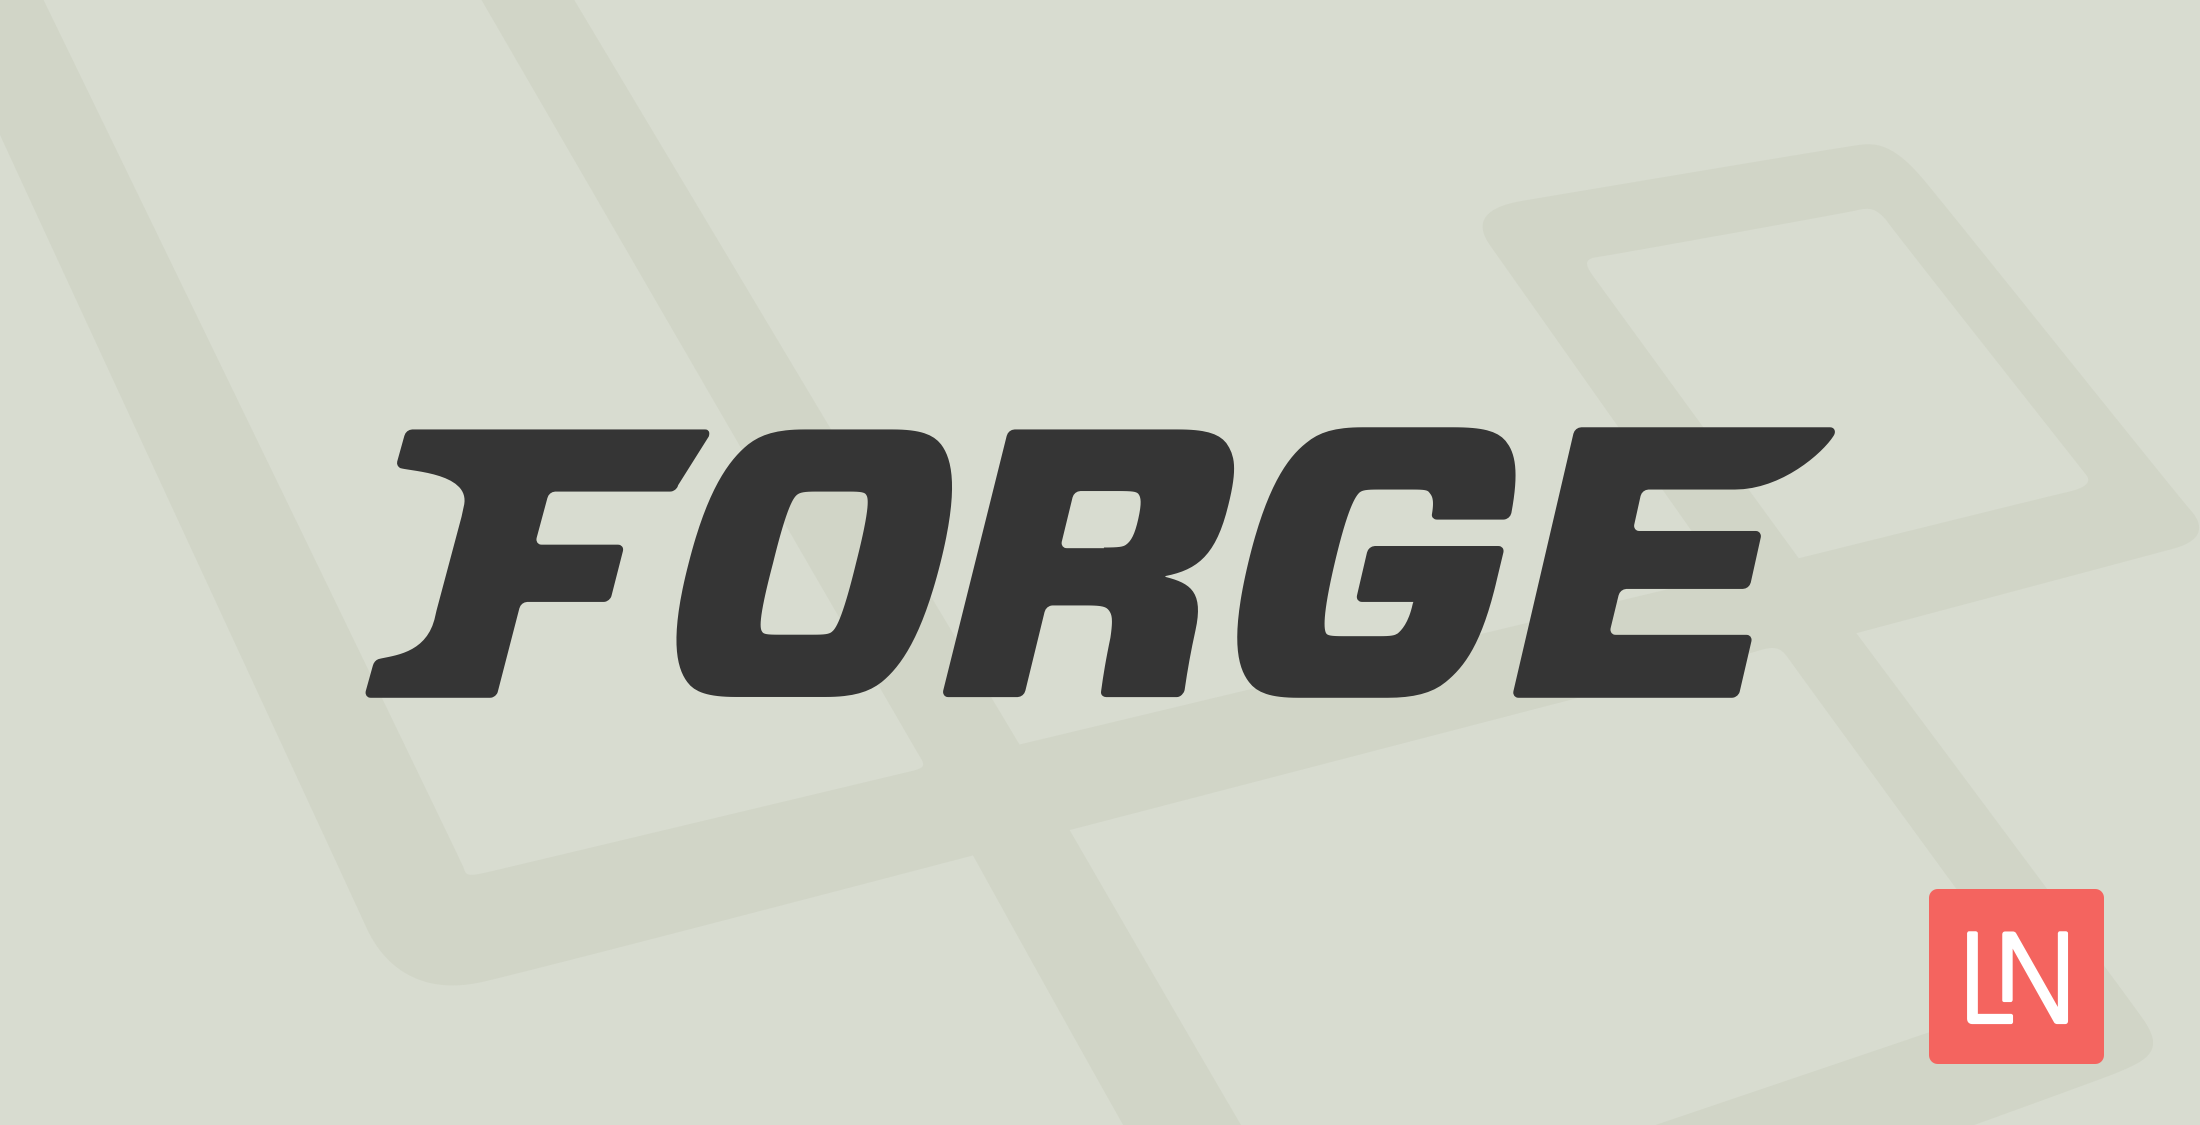 laravel-forge-leader.png